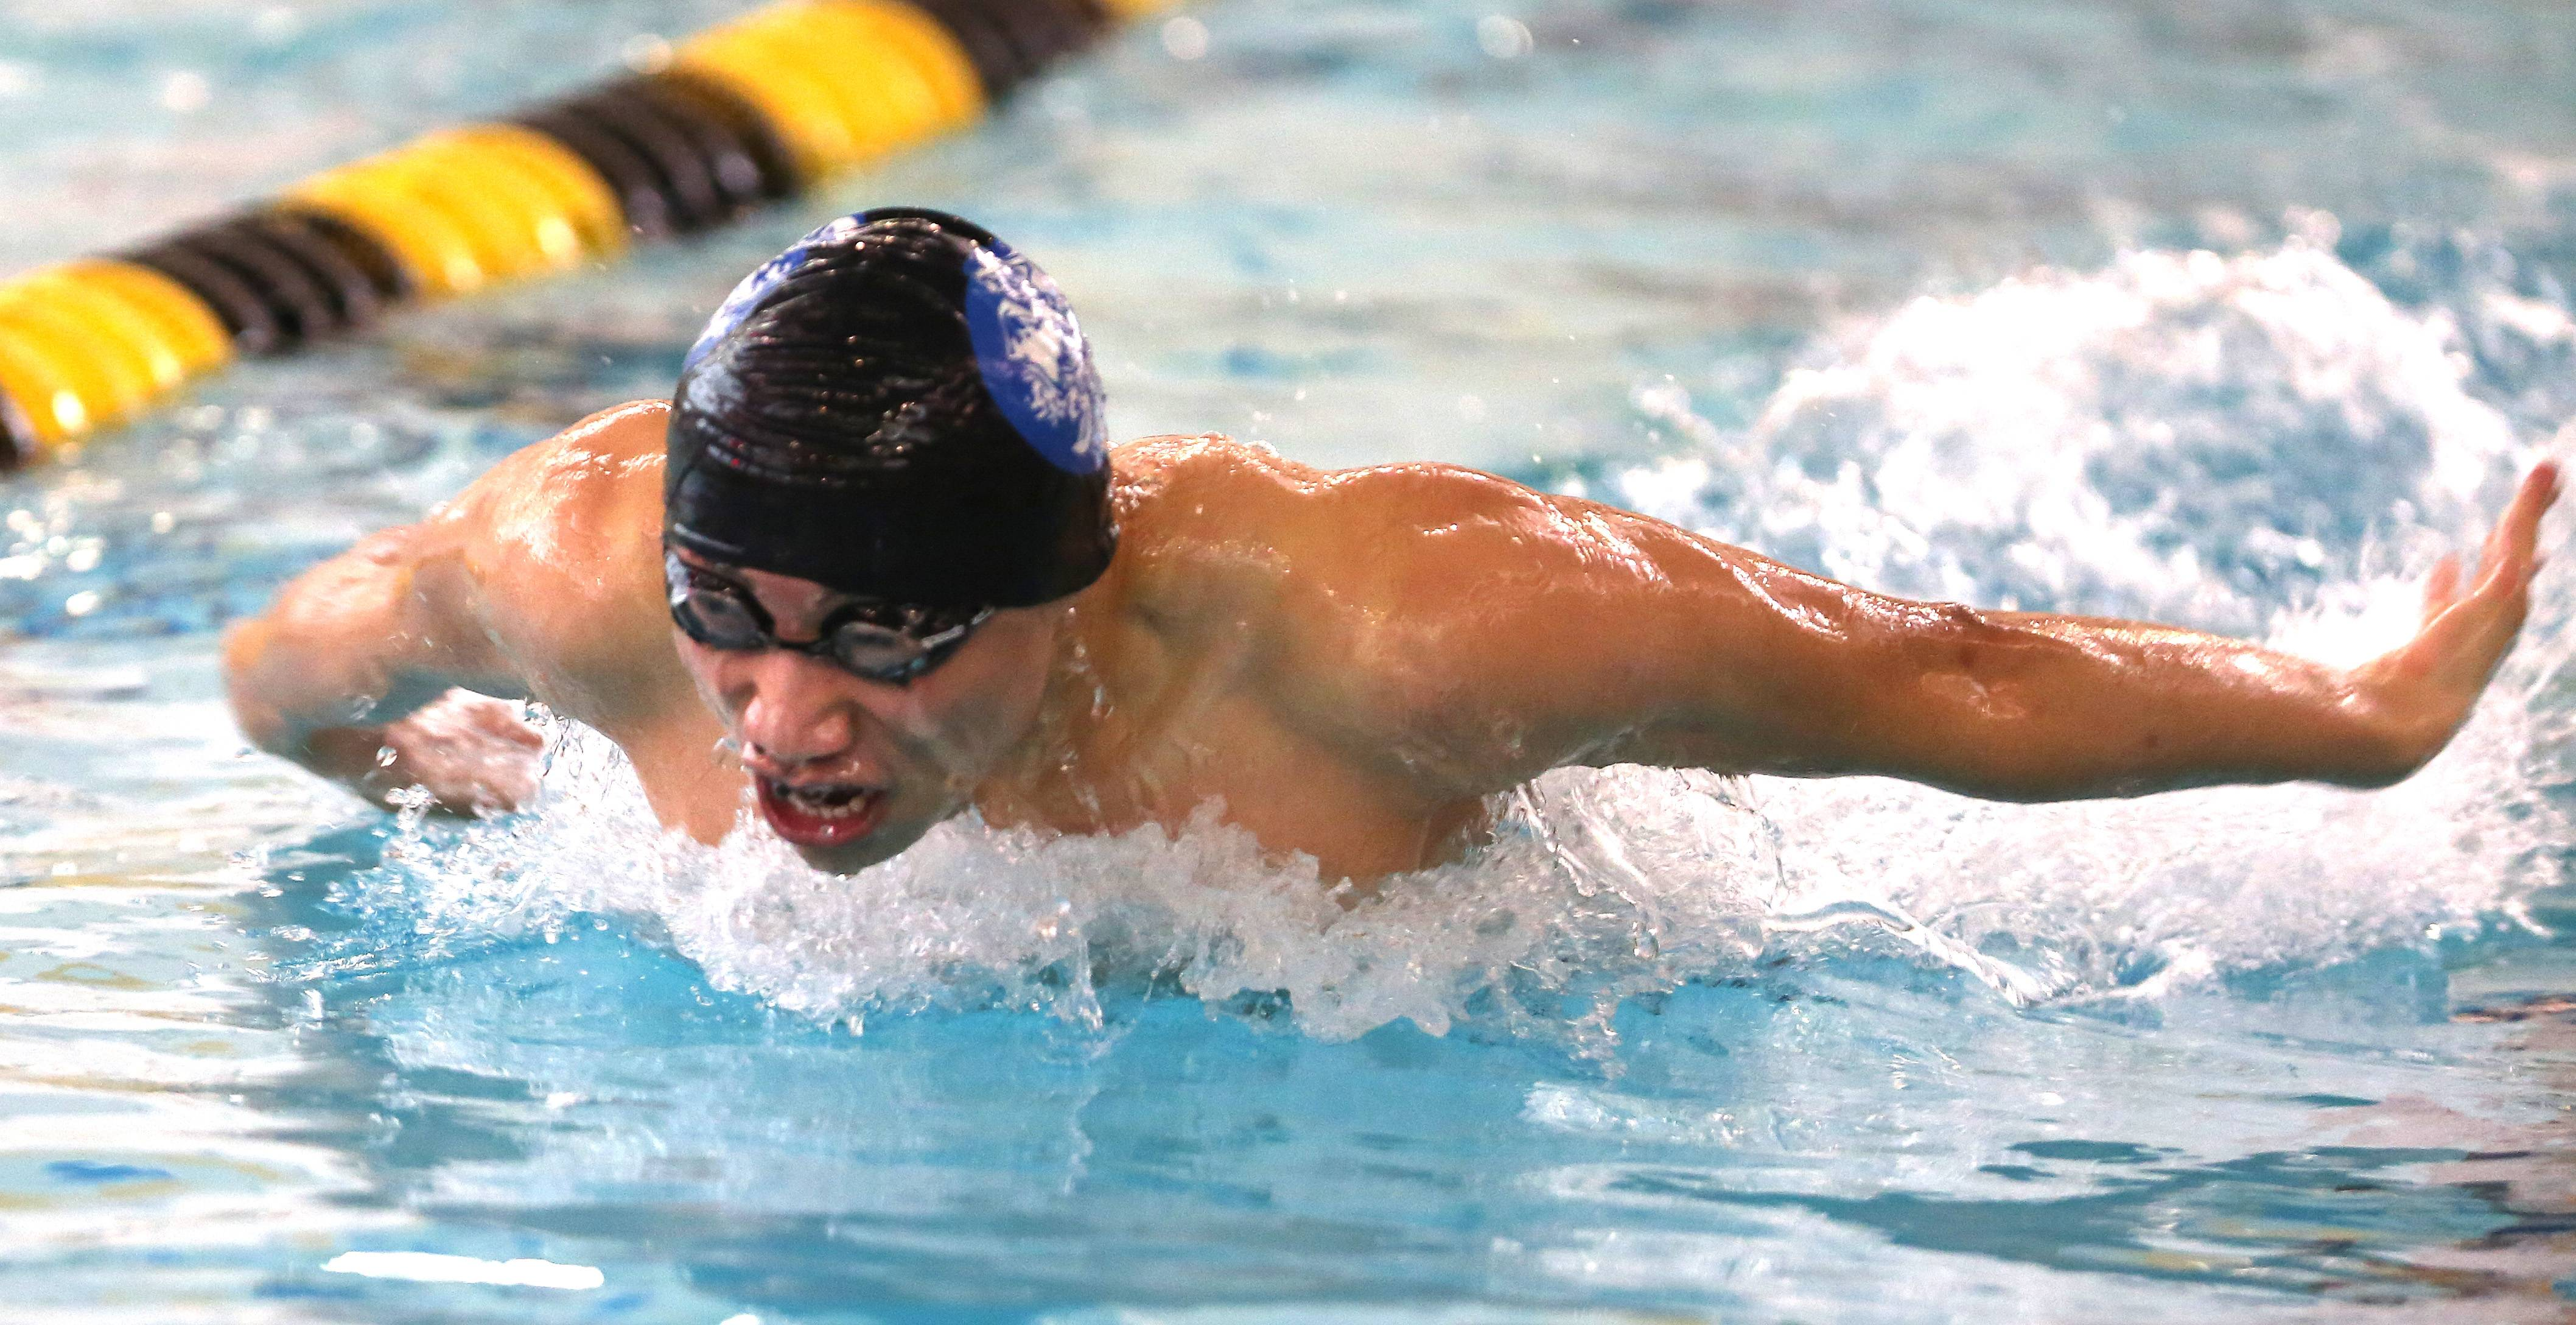 Steven Tan of the Illinois Math and Science Academy is the Metea Valley boys swimming sectional champion with a 49.06 state qualifying time and new pool record.